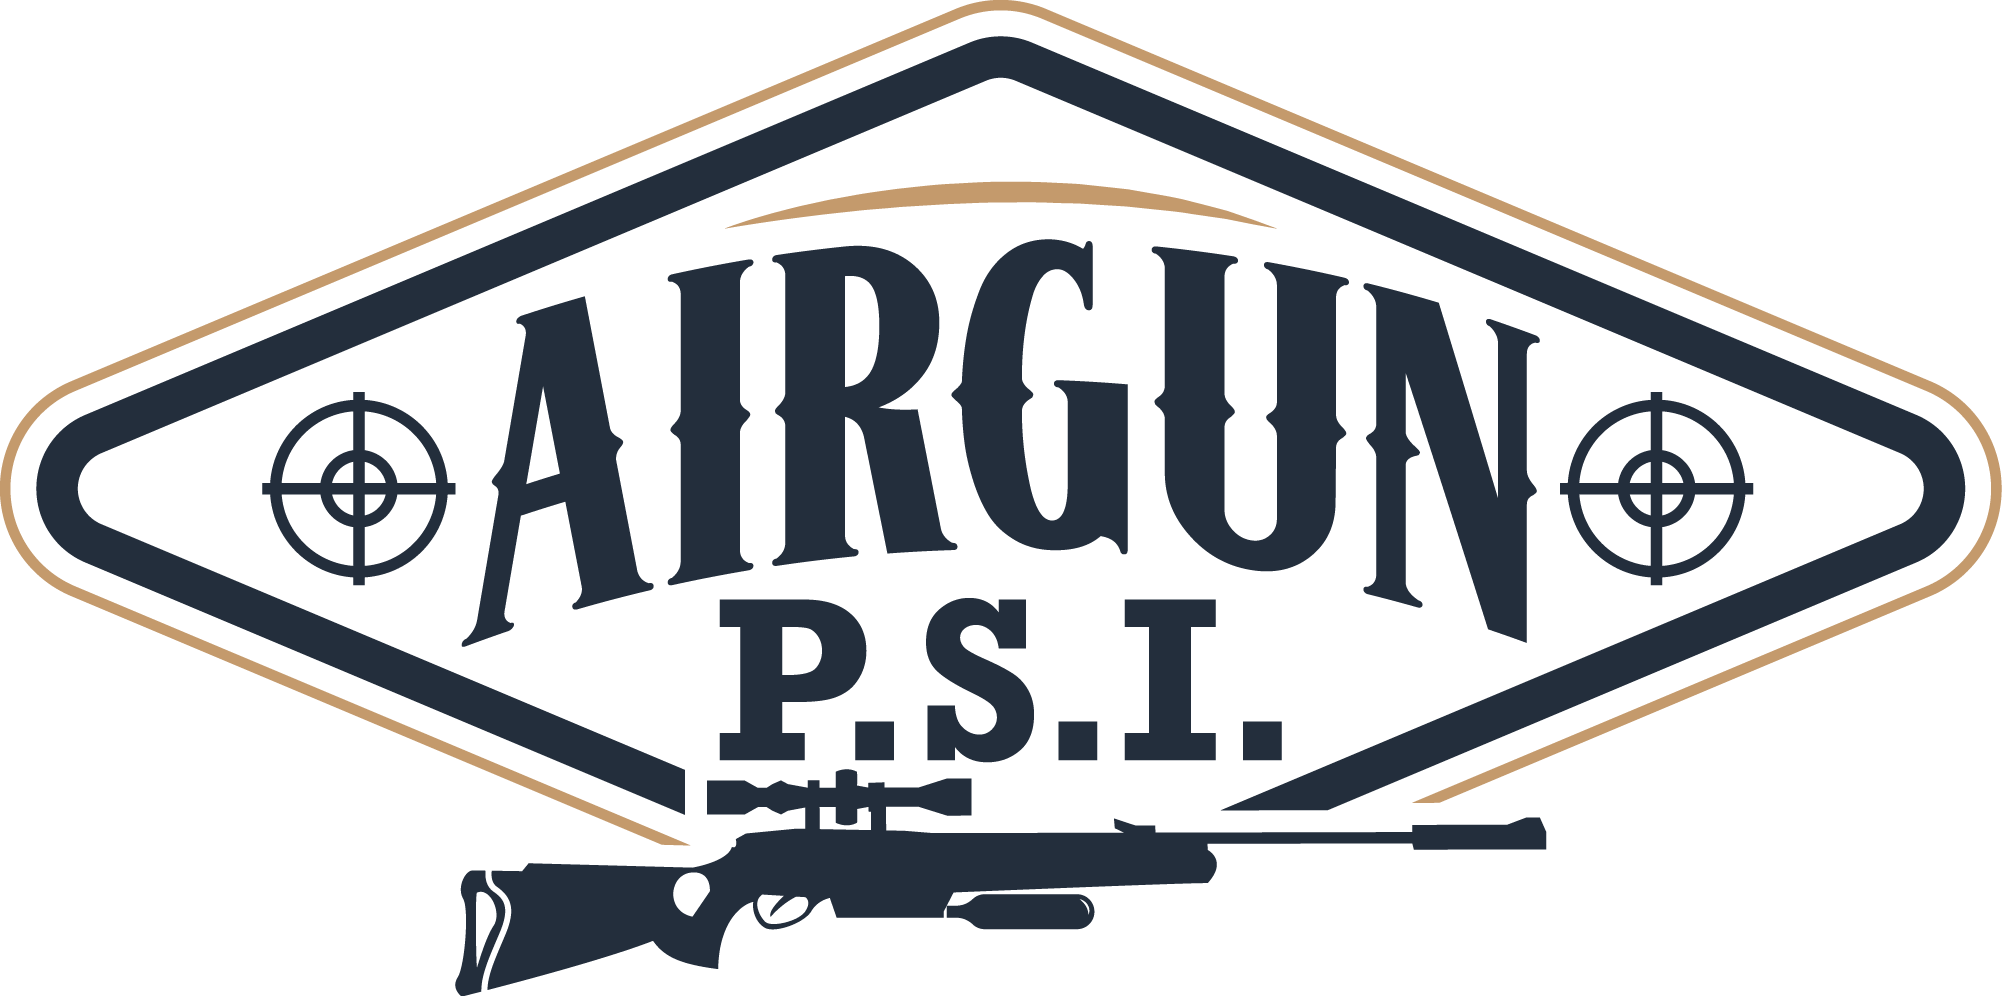 Airgun Reviews - Airgun Pro Shop Institute - Airgun P.S.I.